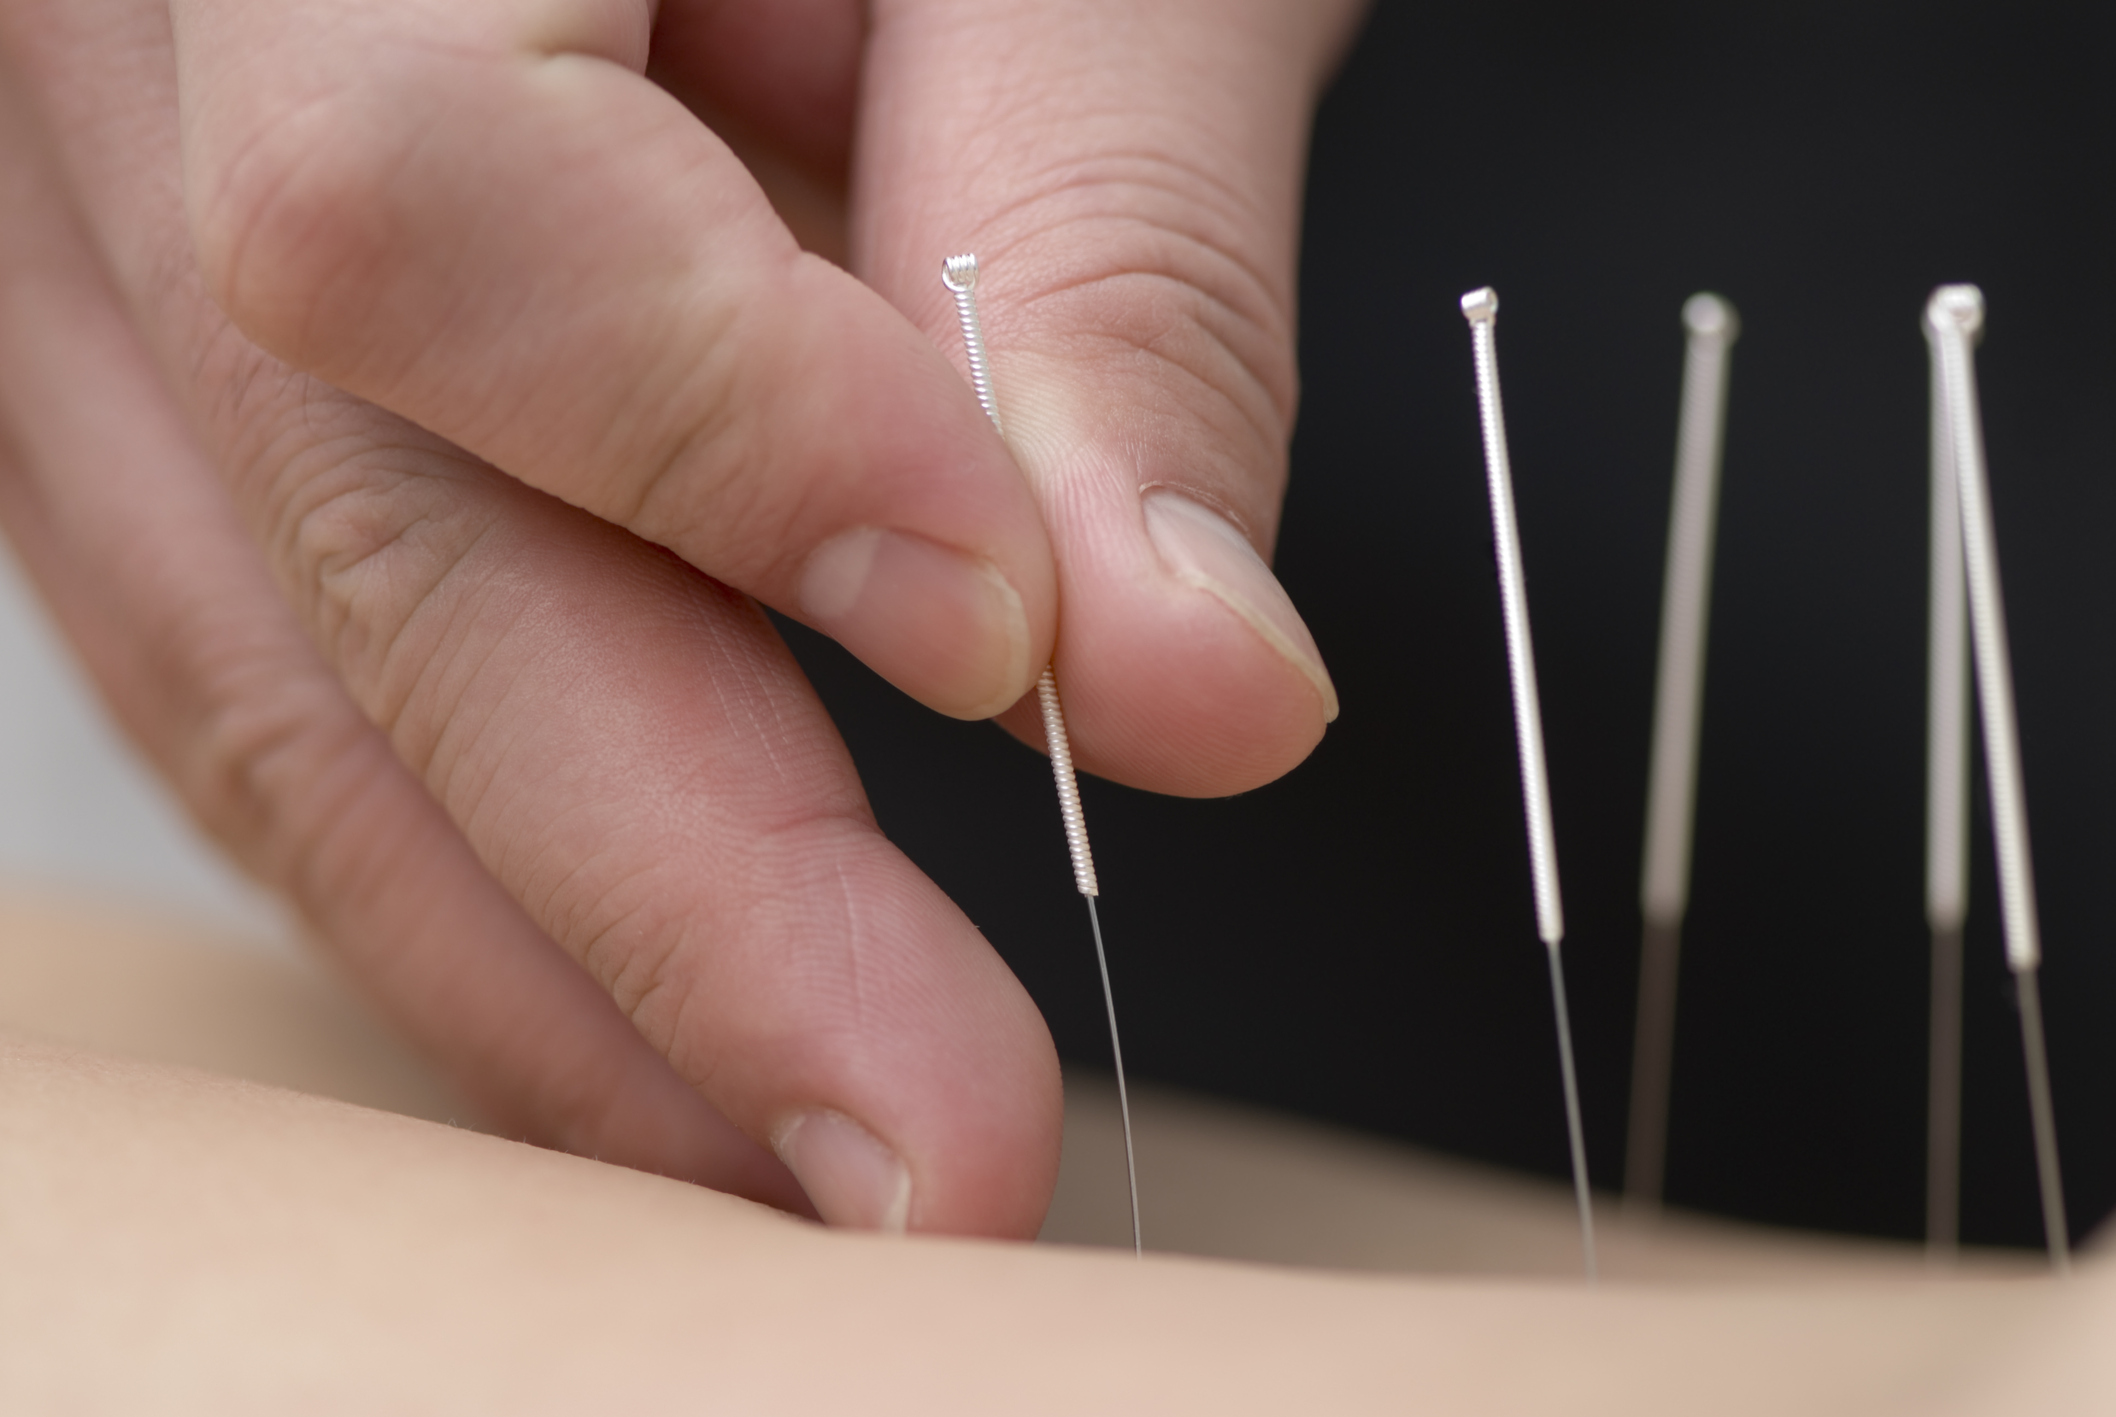 Acupuncture Points For Stress